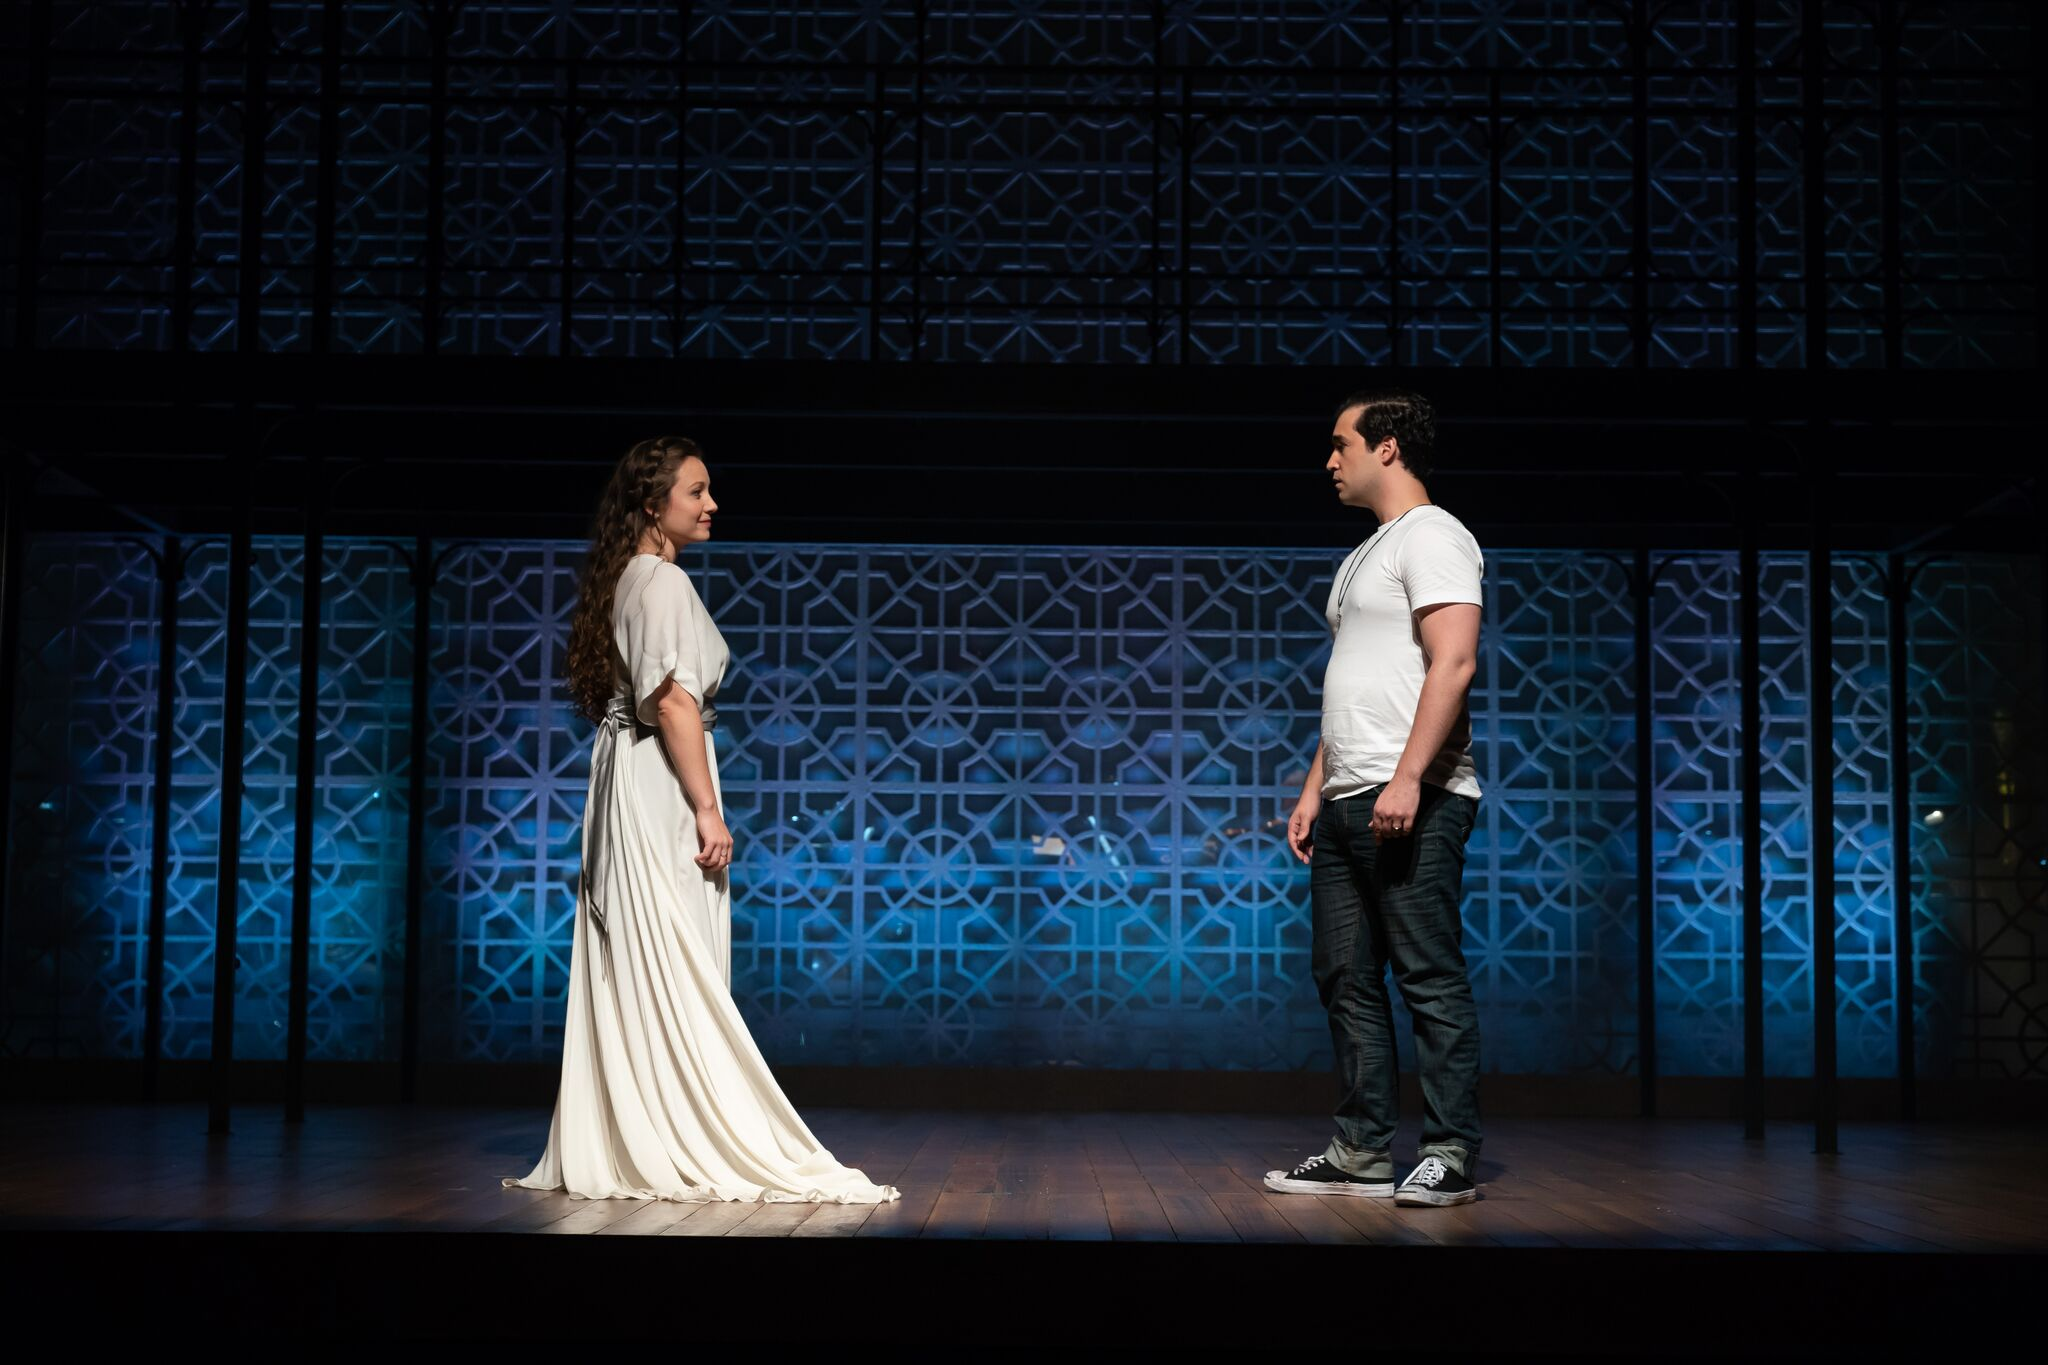 Madison Leonard as Juliette and Alexander McKissick as Romeo. Photo by Scott Suchman; courtesy of Wolf Trap Opera.